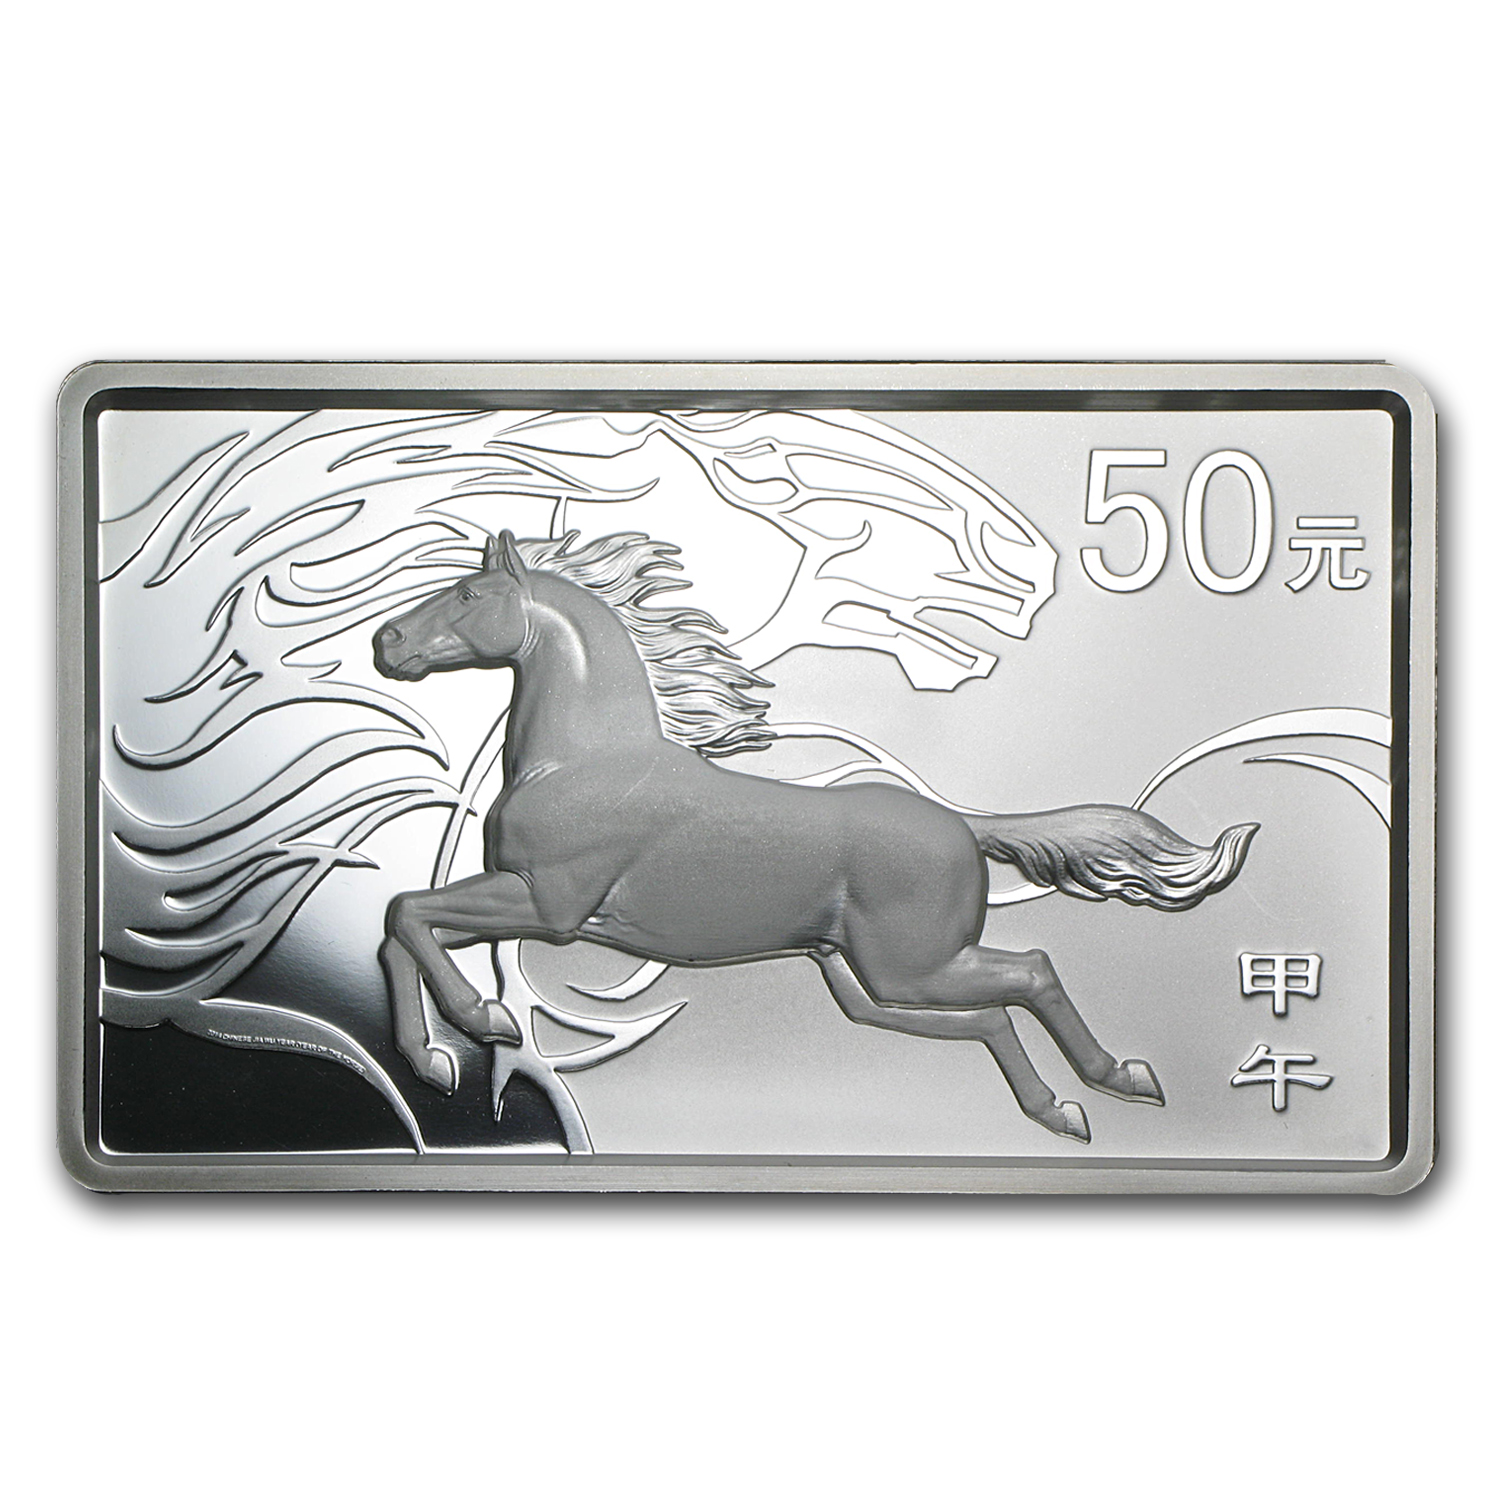 2014 China 5 oz Silver Year of the Horse Proof (Rectangle Coin)